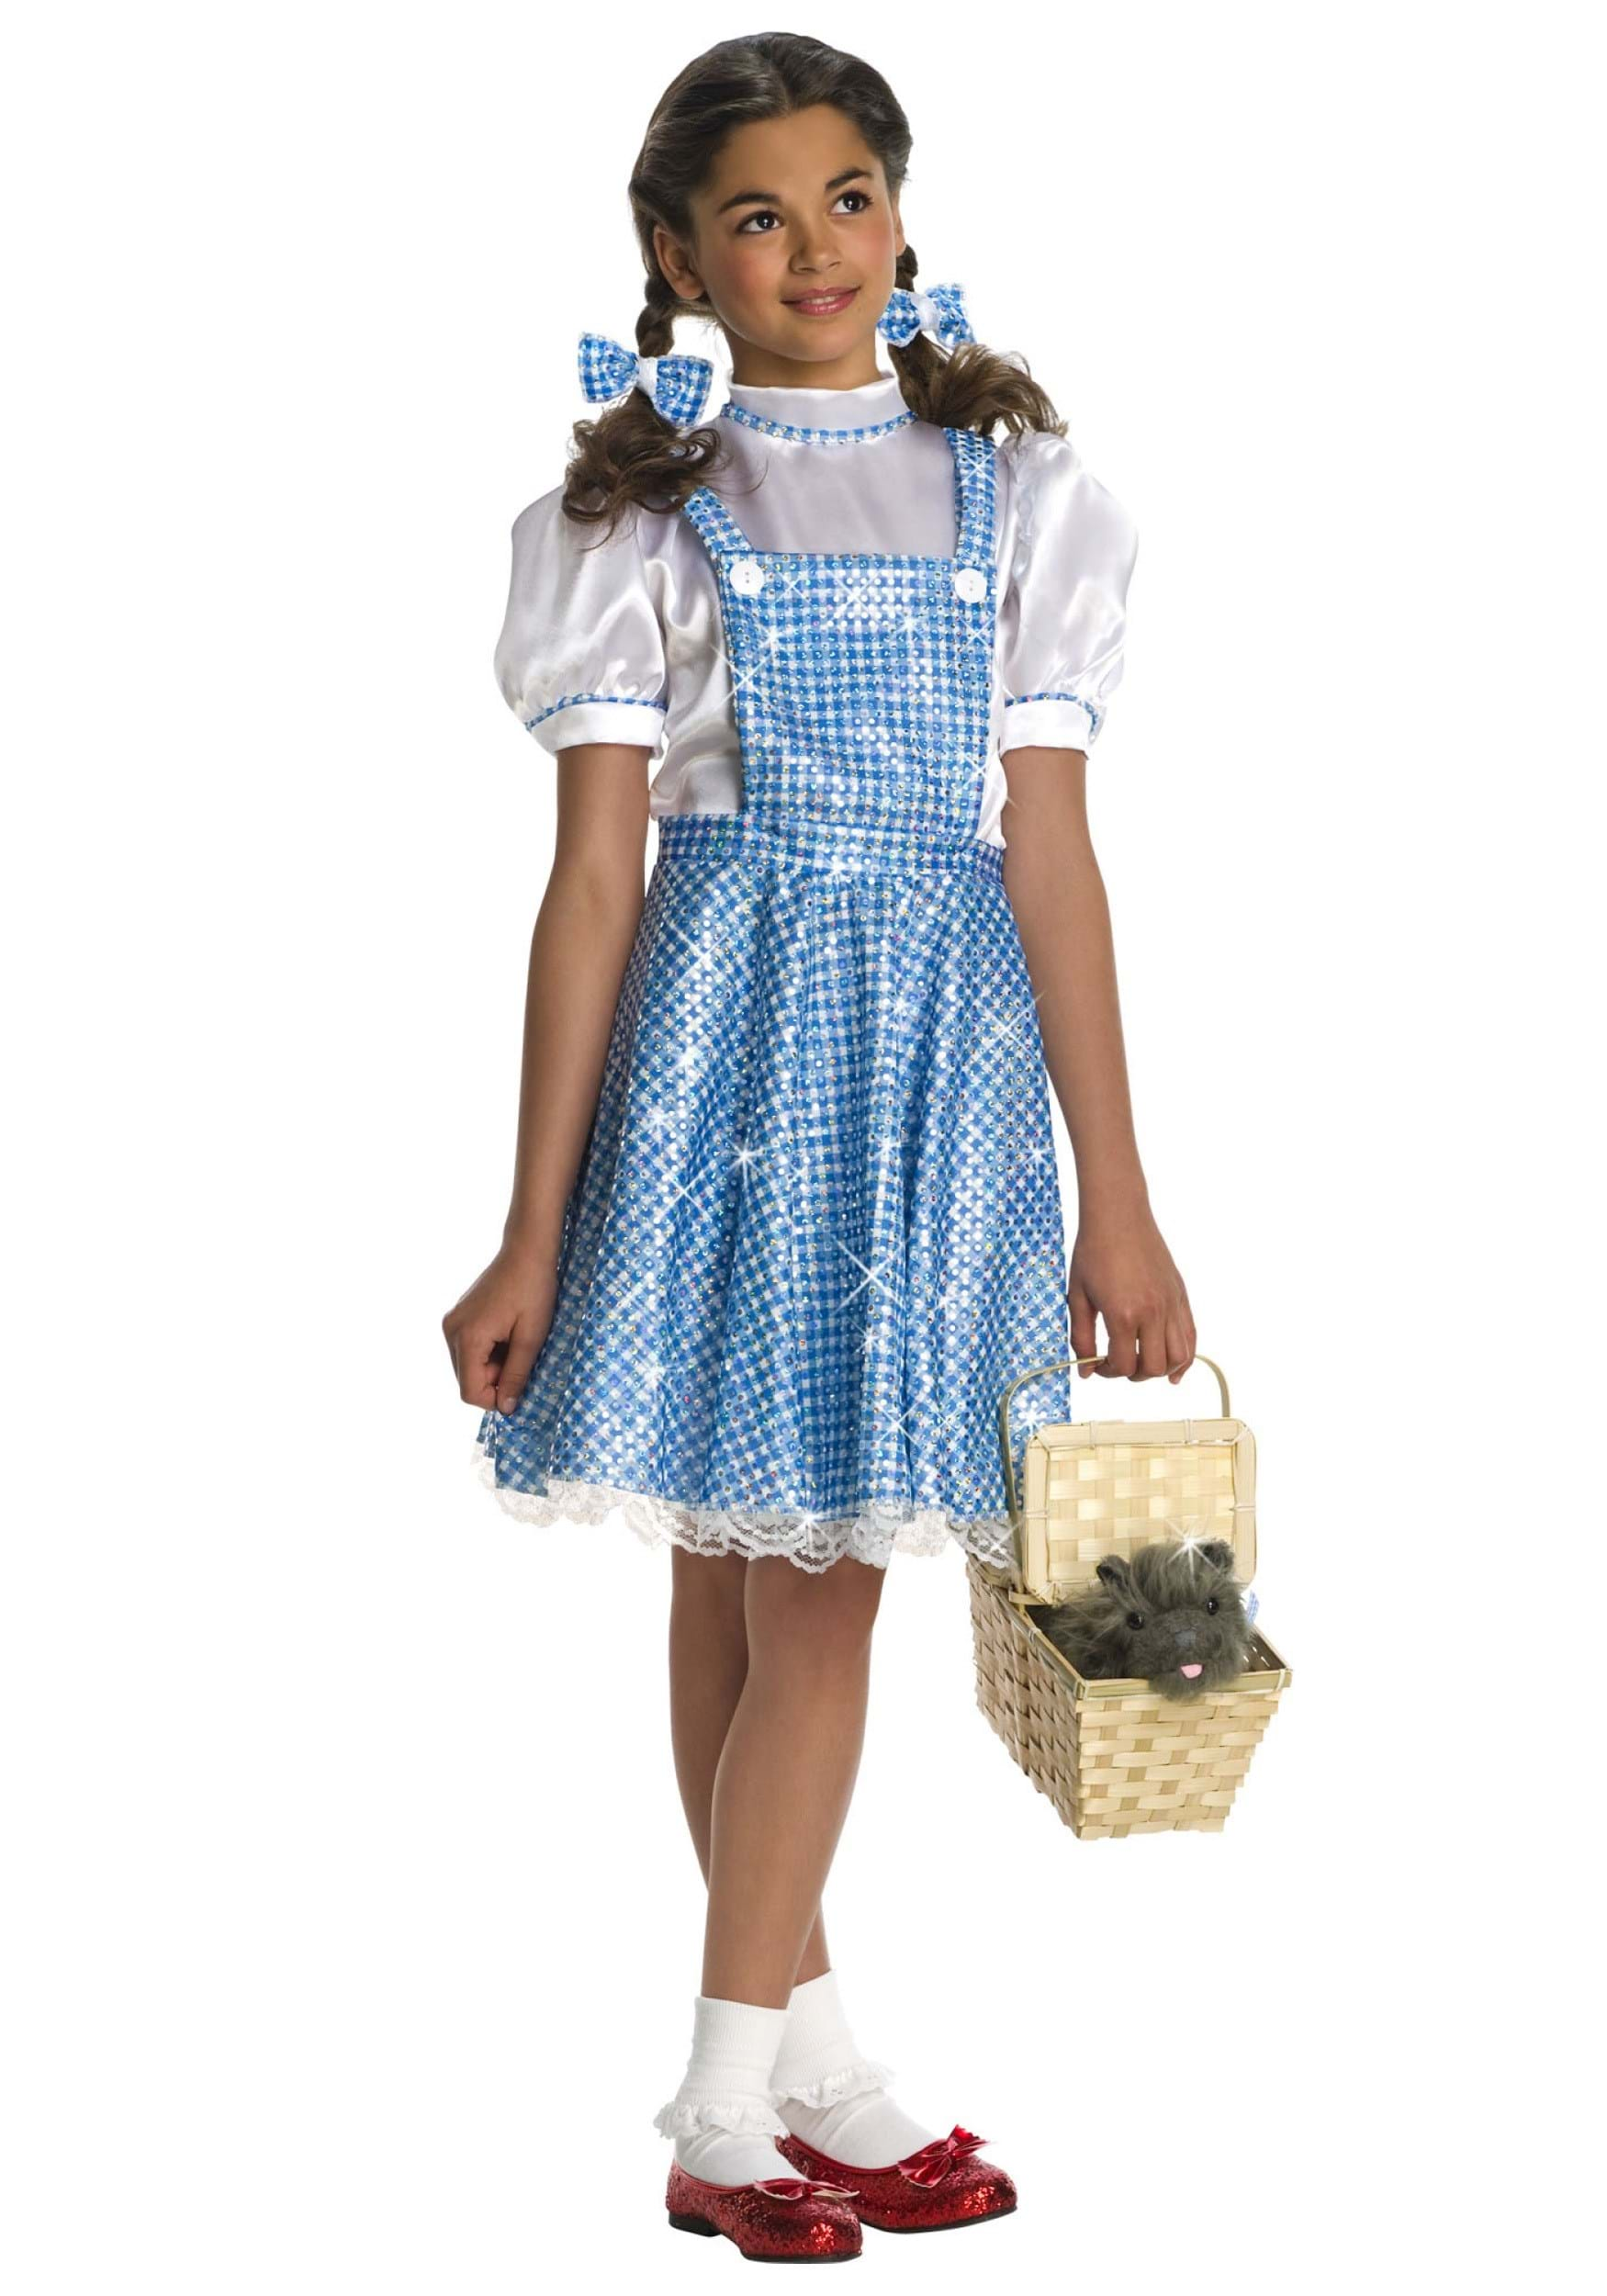 Sequin Dorothy Toddler Costume  sc 1 st  Halloween Costume & Sequin Dorothy Toddler Costume - Girls Wizard of Oz Dorothy Costumes